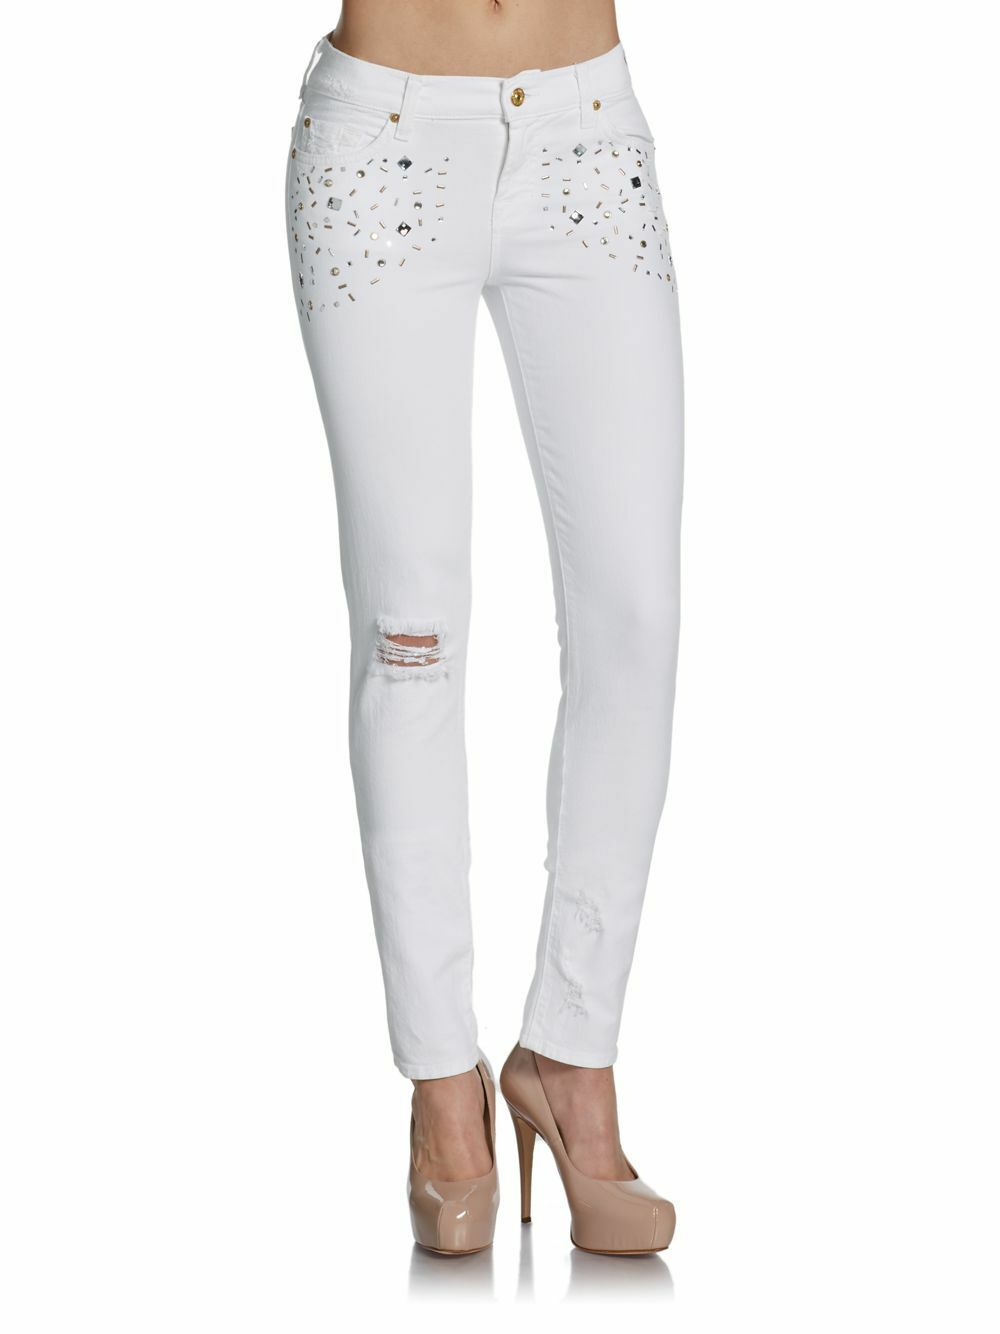 225 NWT 7 FOR ALL MANKIND Sz28 CIGARETTE EMBELLISHED SKINNY JEANS WHITE DESTROY